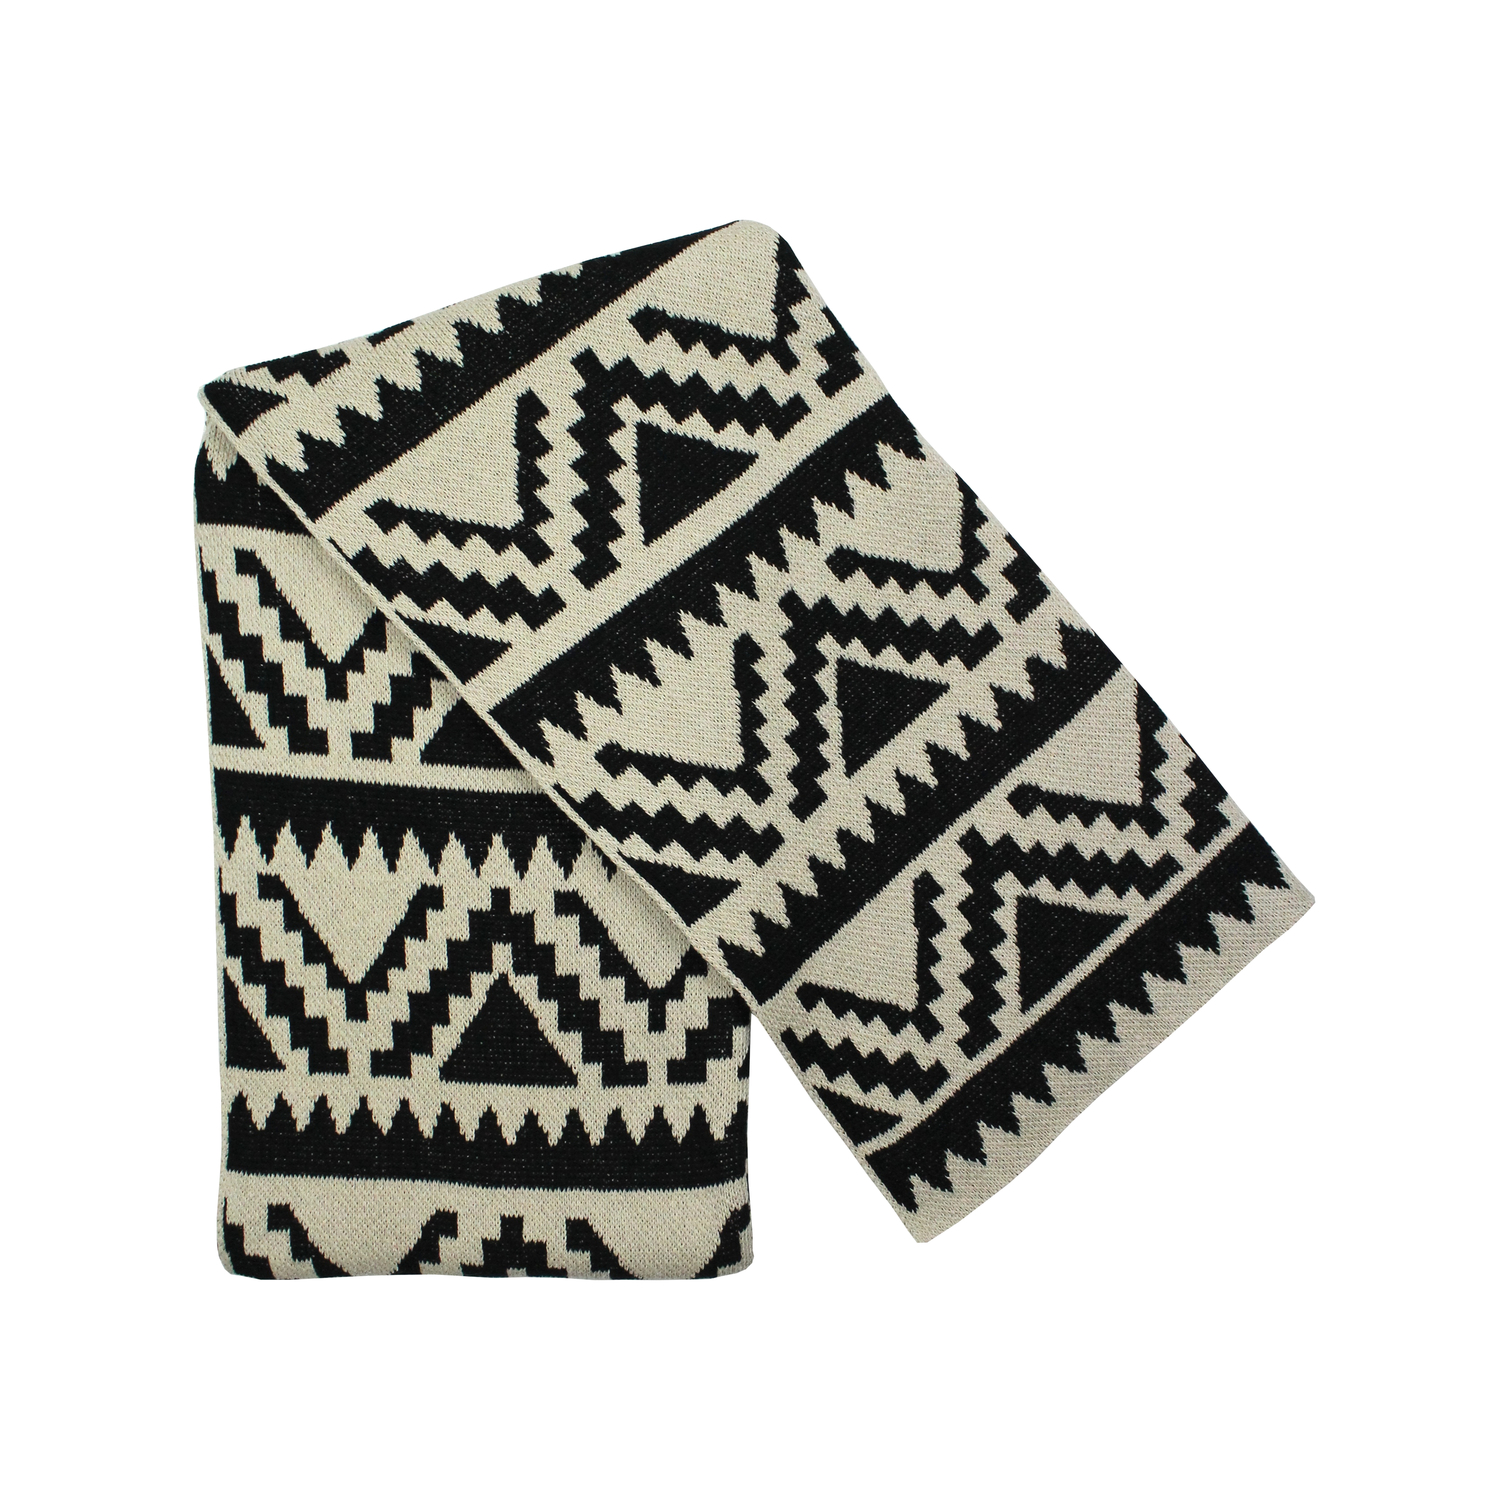 Recycled Cotton Throw by Happy Habitat